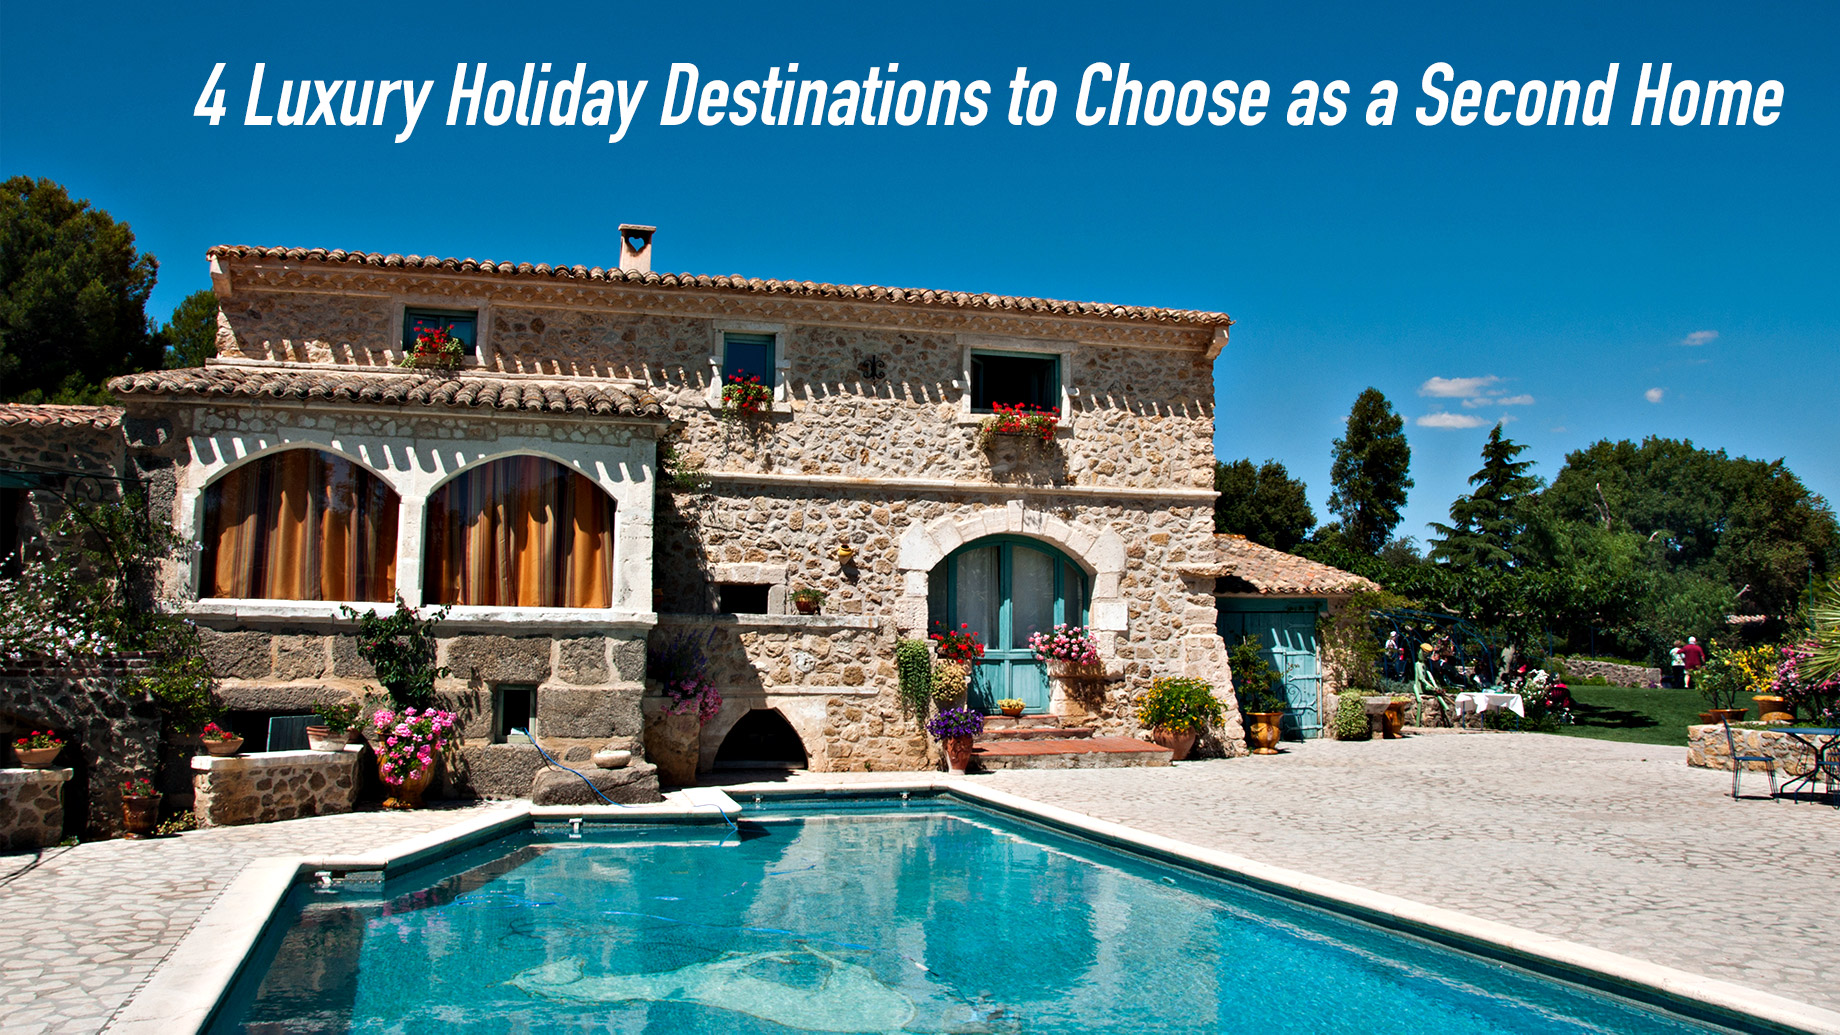 4 Luxury Holiday Destinations to Choose as a Second Home